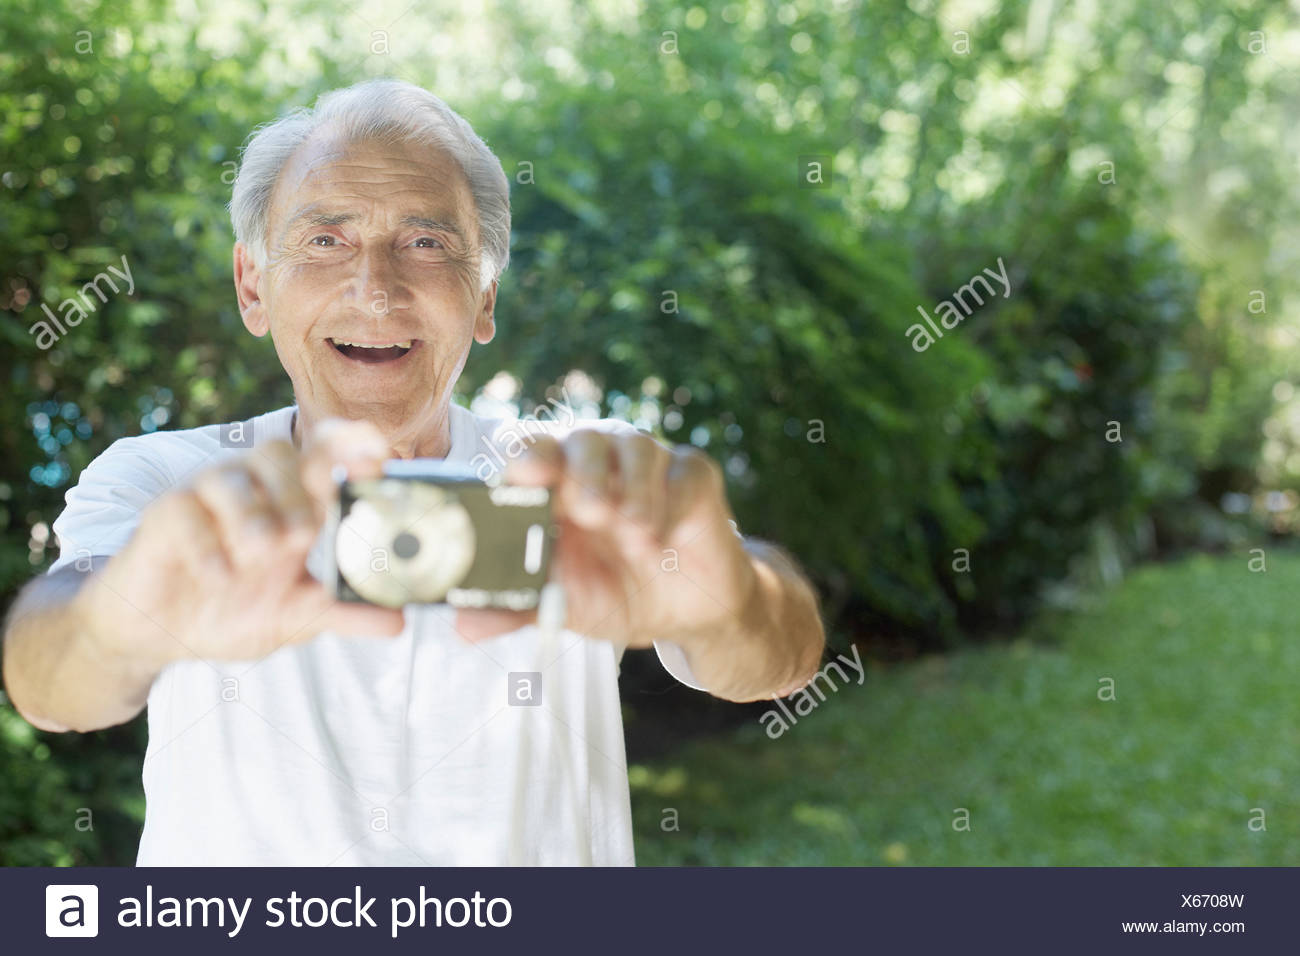 Senior man outdoors holding out digital camera and smiling - Stock Image